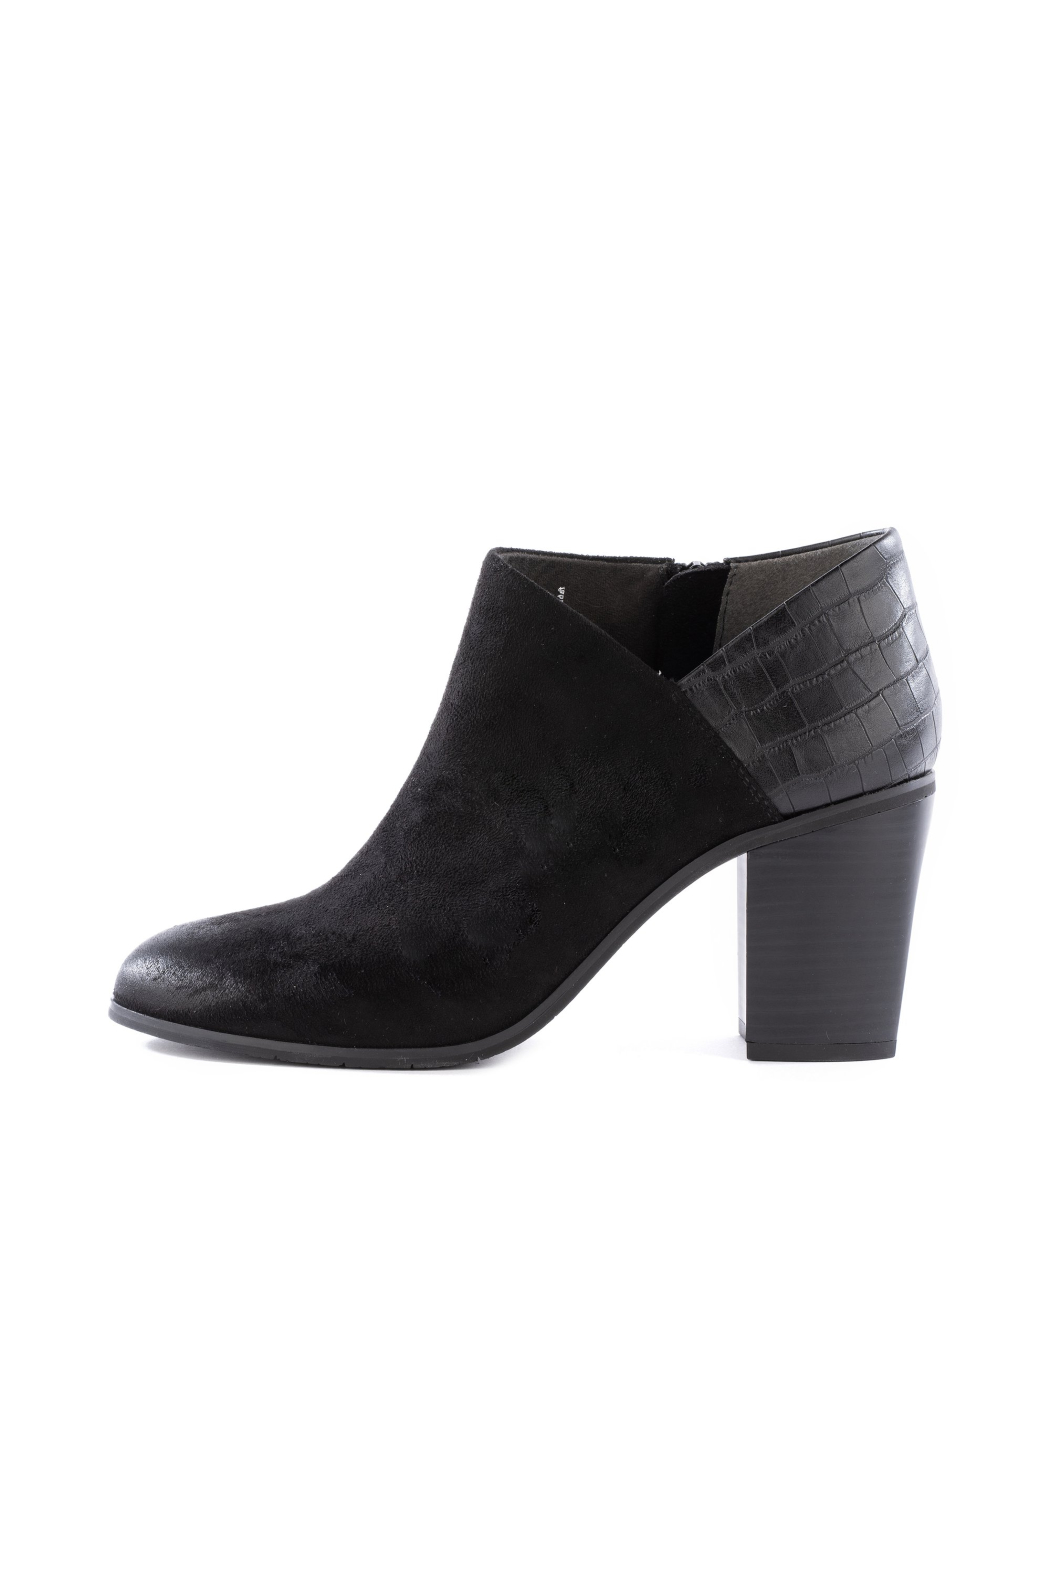 BC Footwear Kettle Bootie - Front Cropped Image